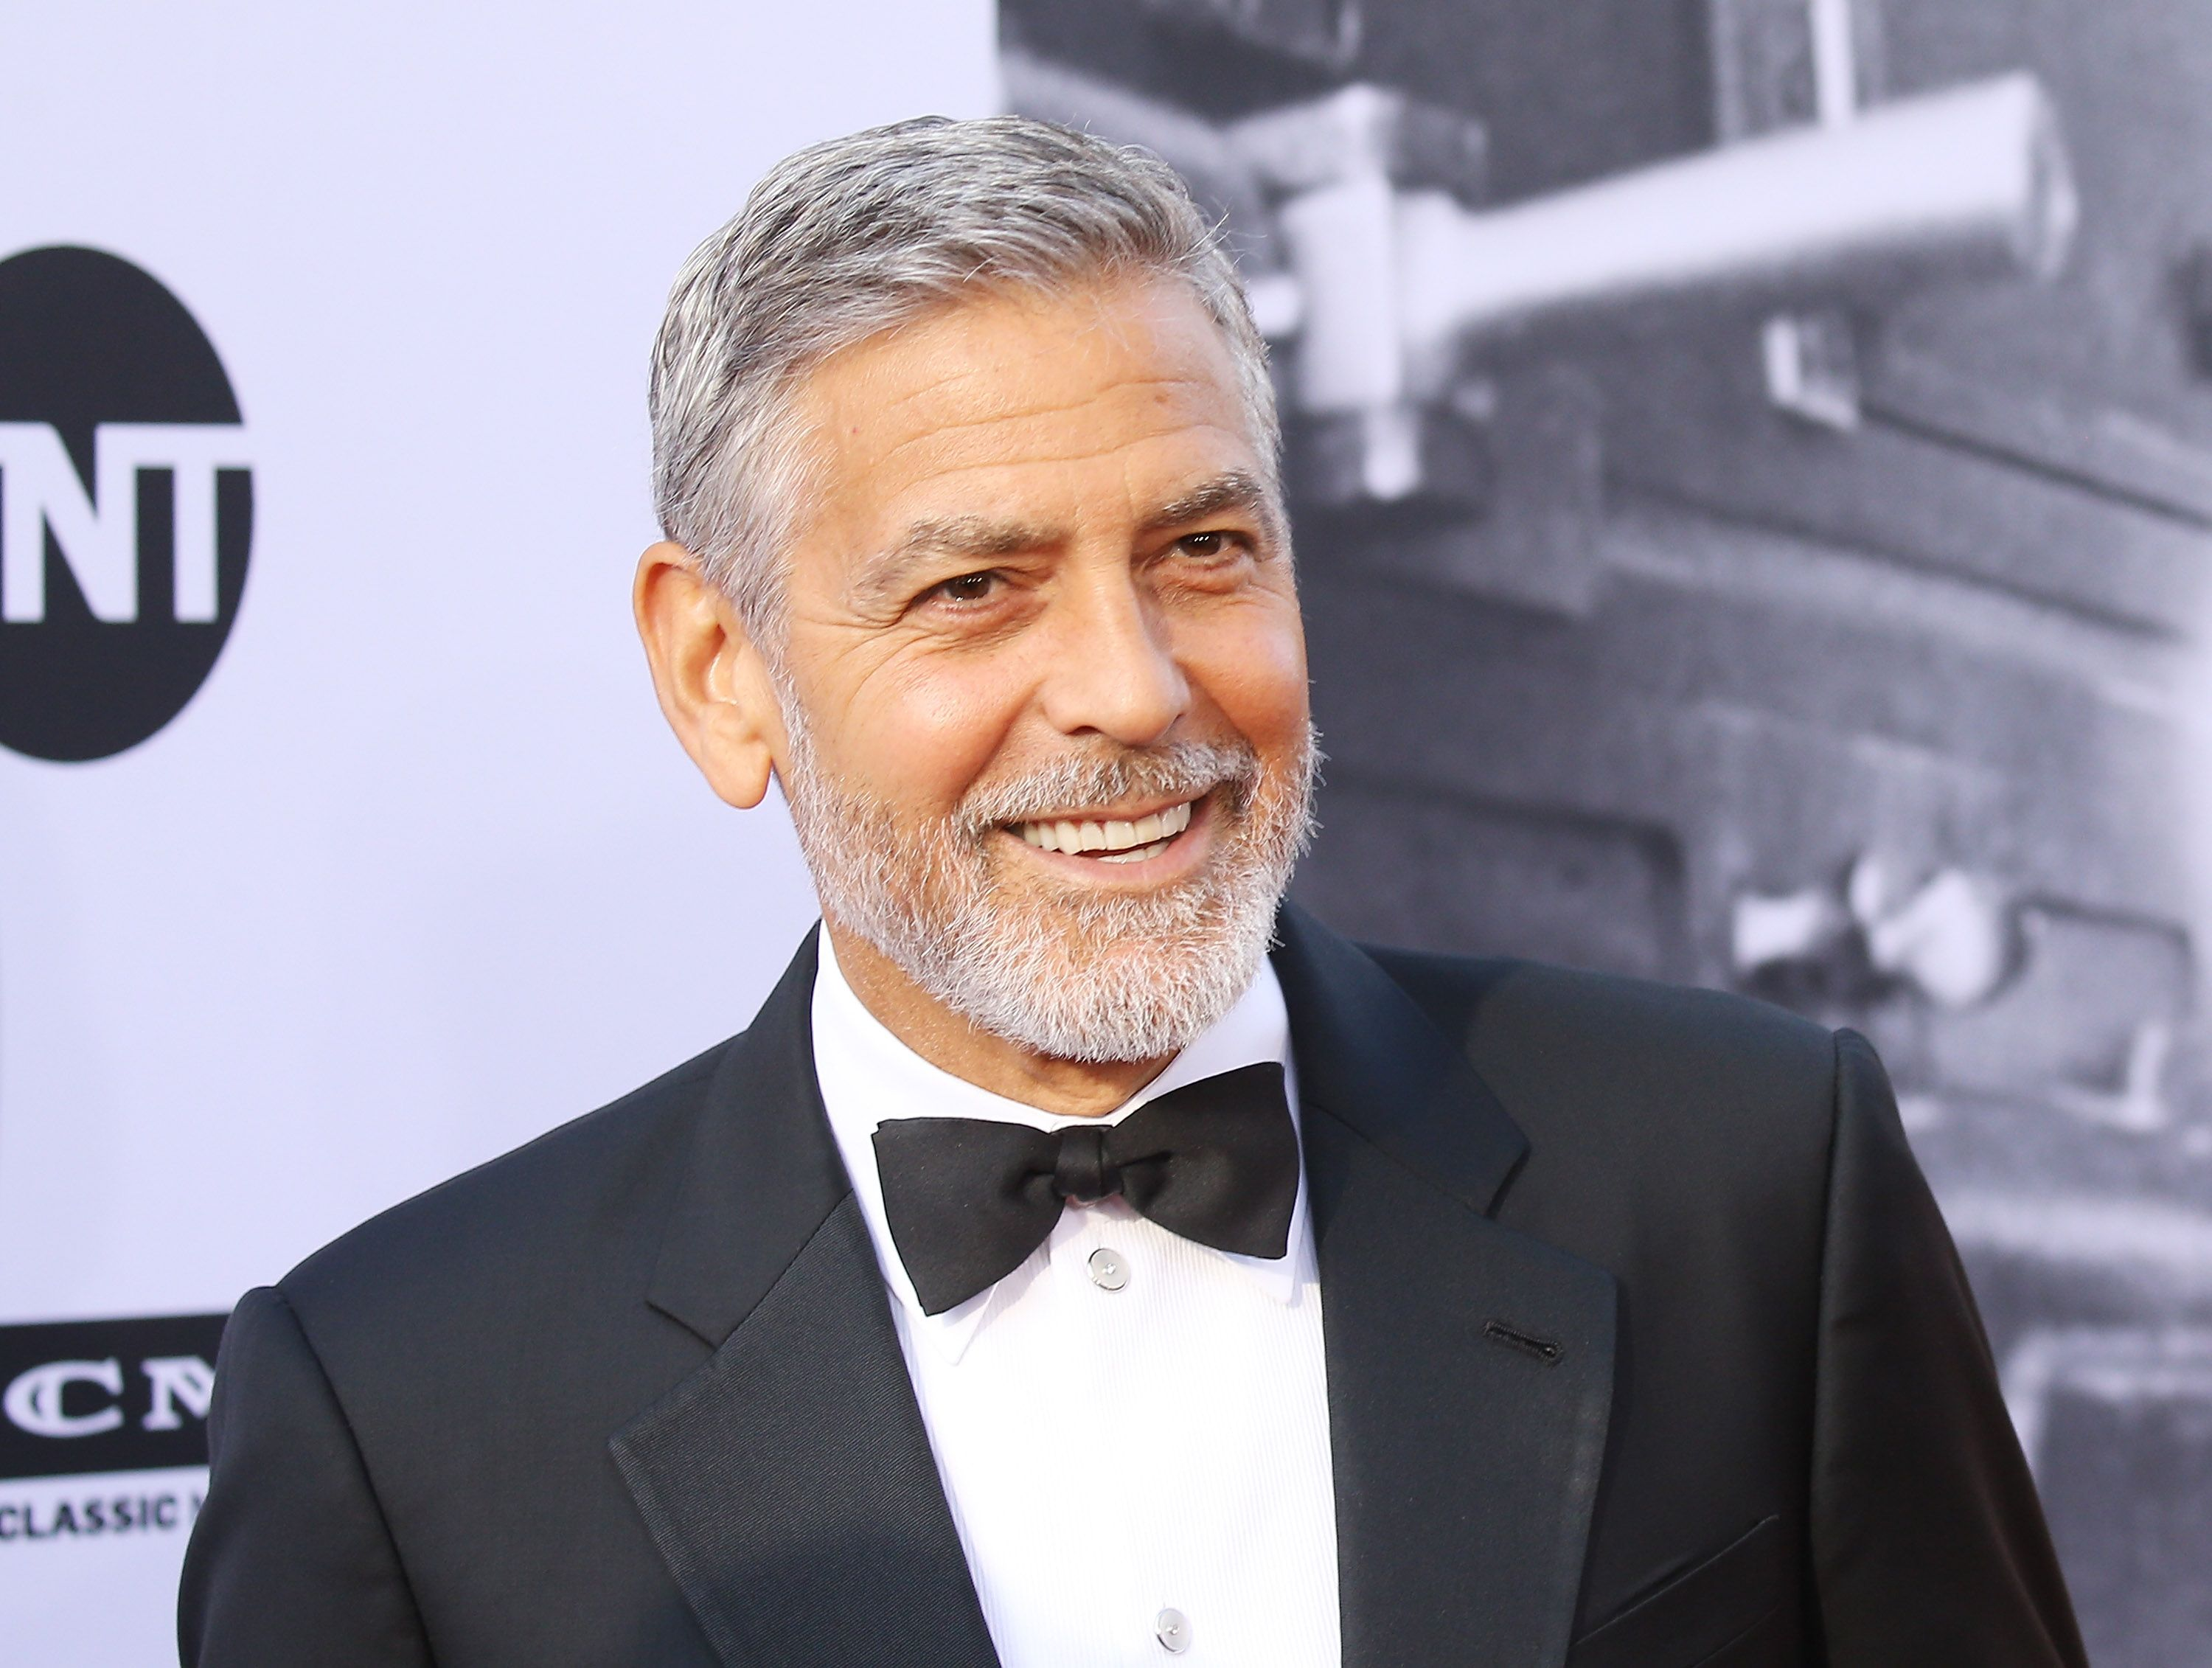 What Is George Clooney's Net Worth? - What Is George Clooney Worth Now?